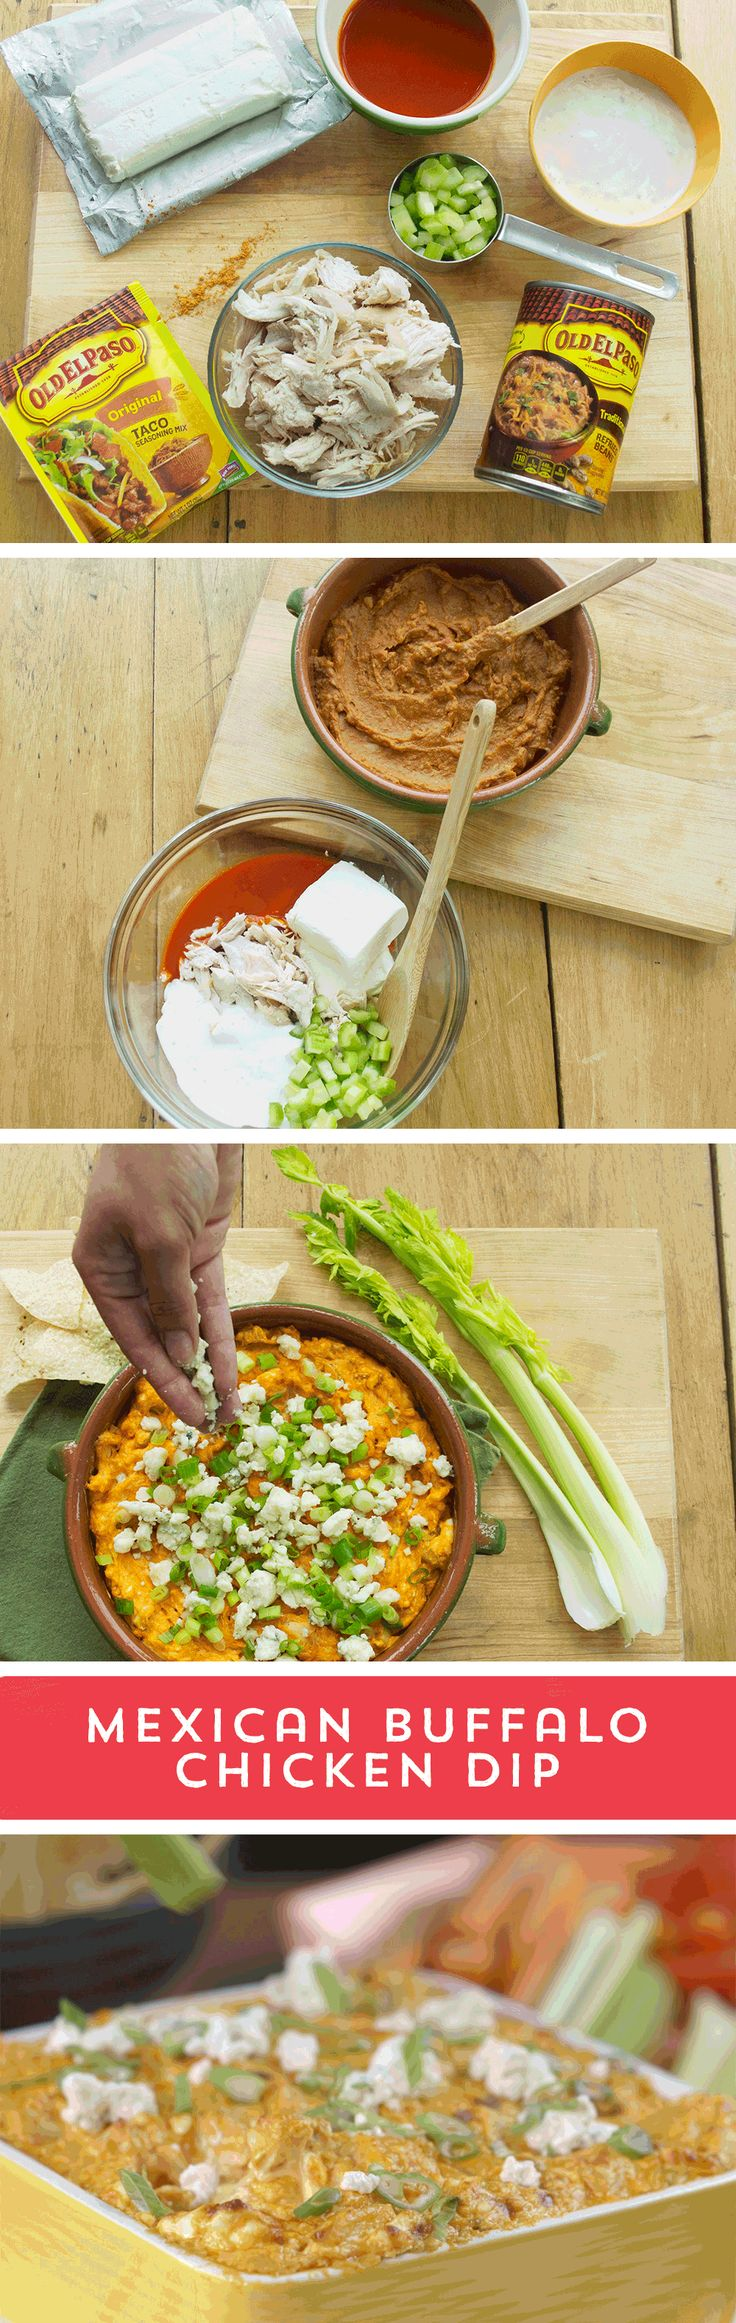 Win over your game day crowd with a flavorful take on an old favorite! This Mexican Buffalo Chicken Dip combines everything you love about buffalo chicken with a tasty Mexican twist! Mix Old El Paso™ Refried Beans and Taco Seasoning until well blended. Then, combine buffalo sauce, chicken, cream cheese, celery and blue cheese dressing, and layer it over the beans mixture. Bake for 35 minutes, and top it off with your favorite garnishes!